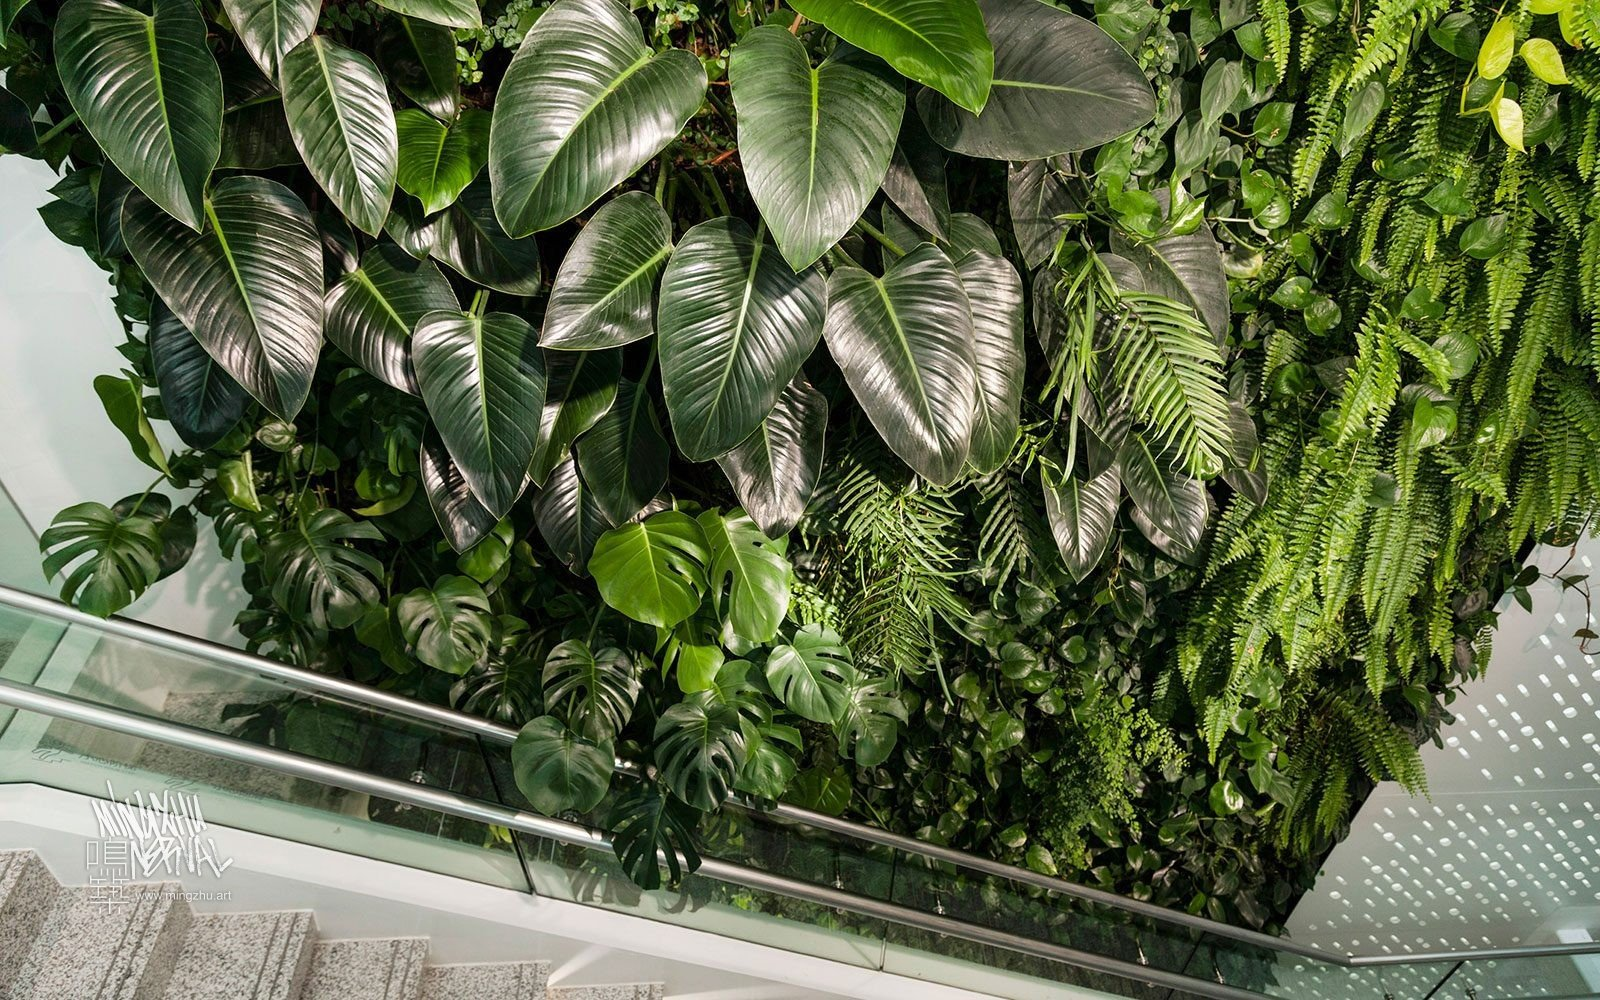 At Mingzhu Nerval, we thrive at creating the most beautiful vertical gardens in the world. For Nu Skin, we created an awesome living wall design - Shanghai, 2013.